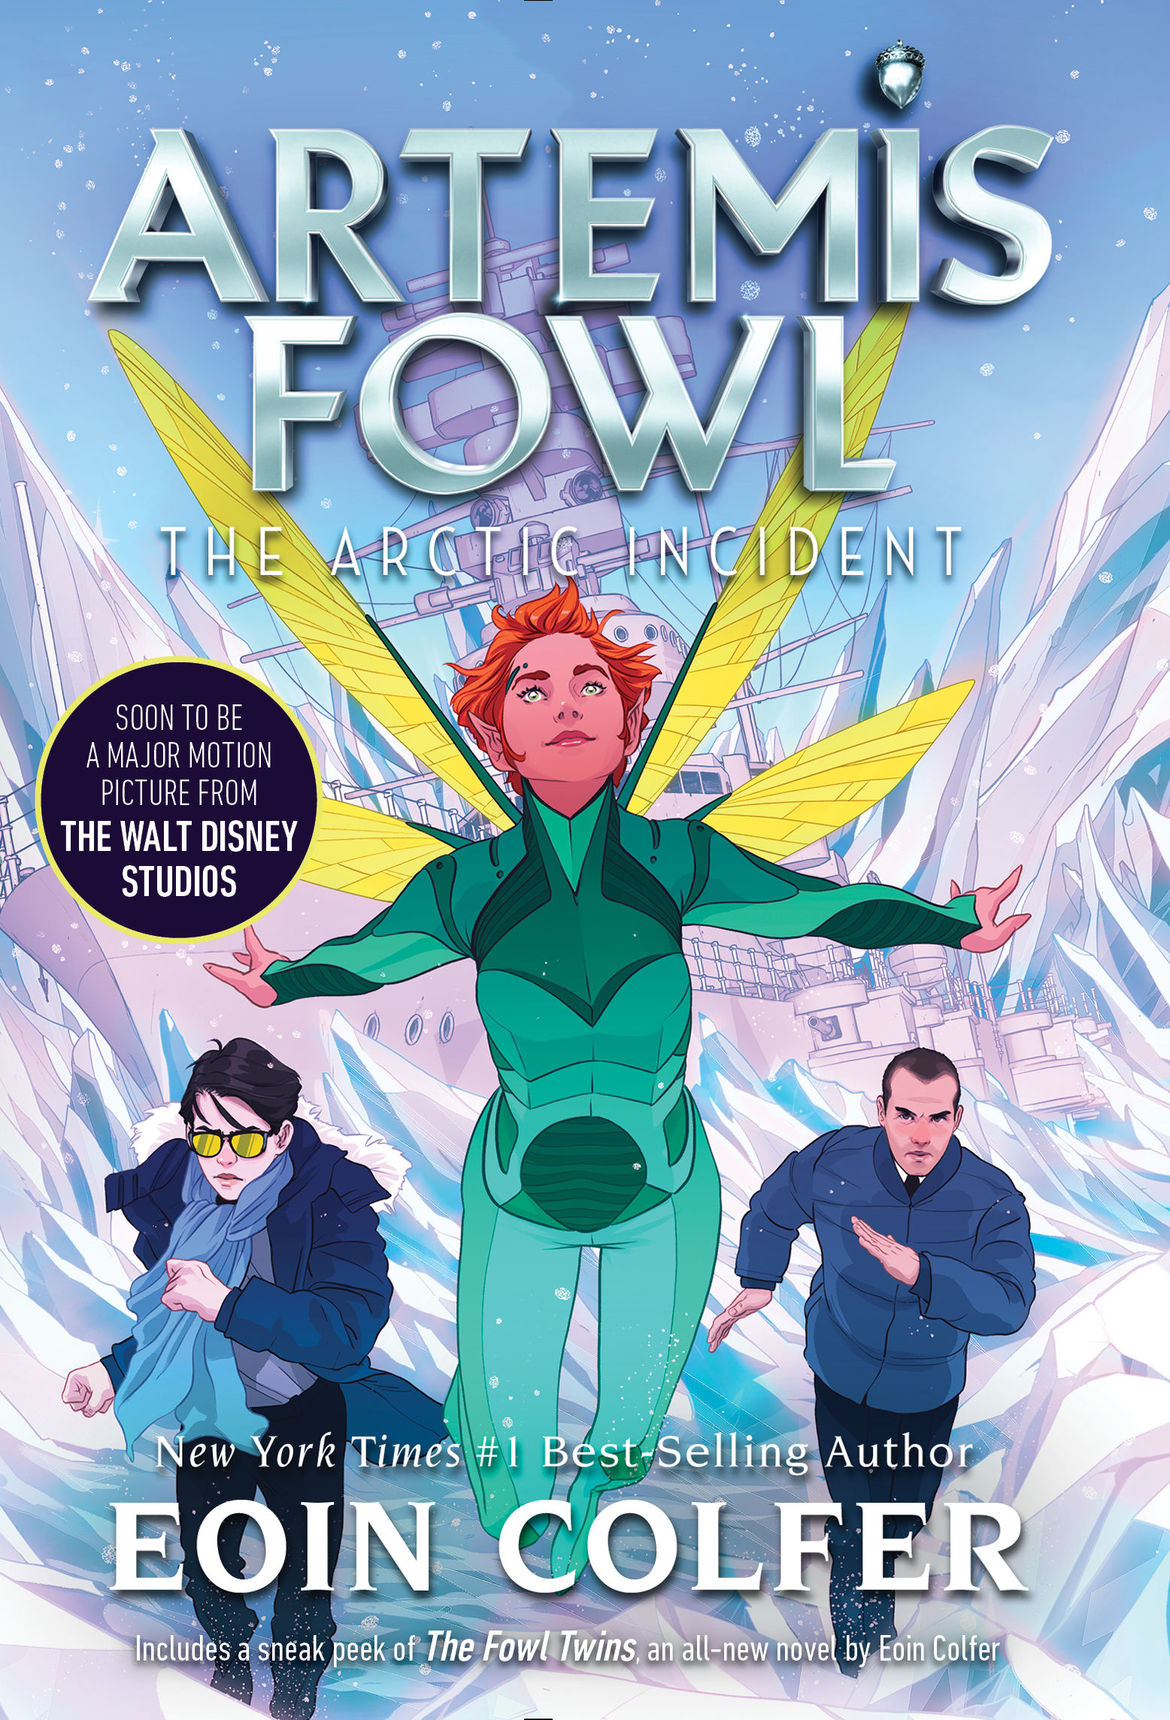 Artemis Fowl 2 Arctic Incident repackage